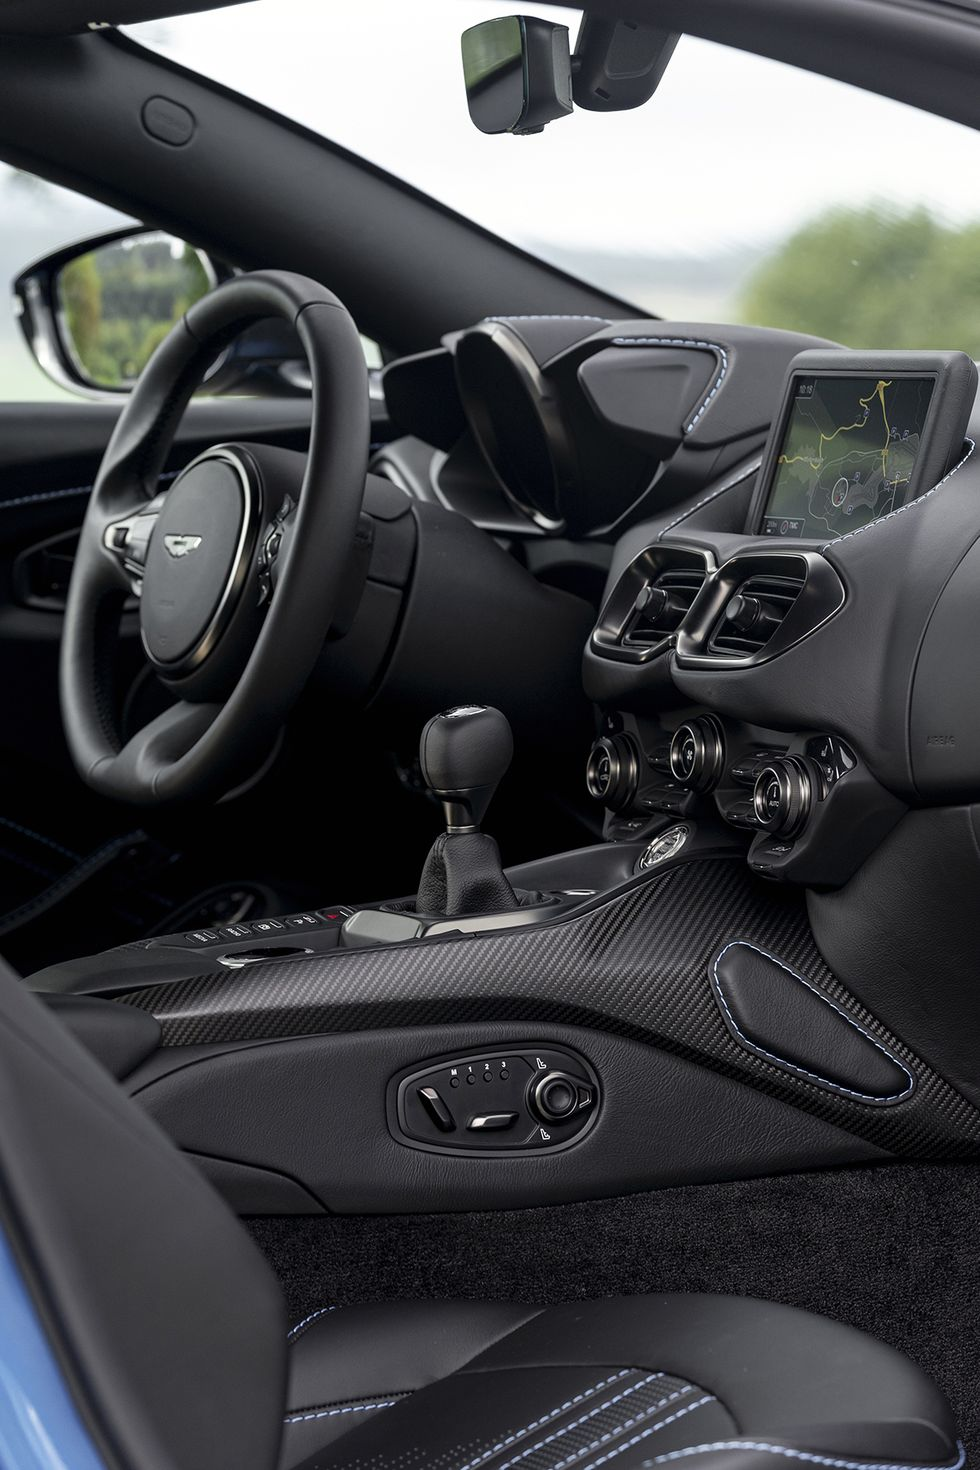 Aston Martin Is Abandoning the Manual Transmission Even Though It Promised Not To